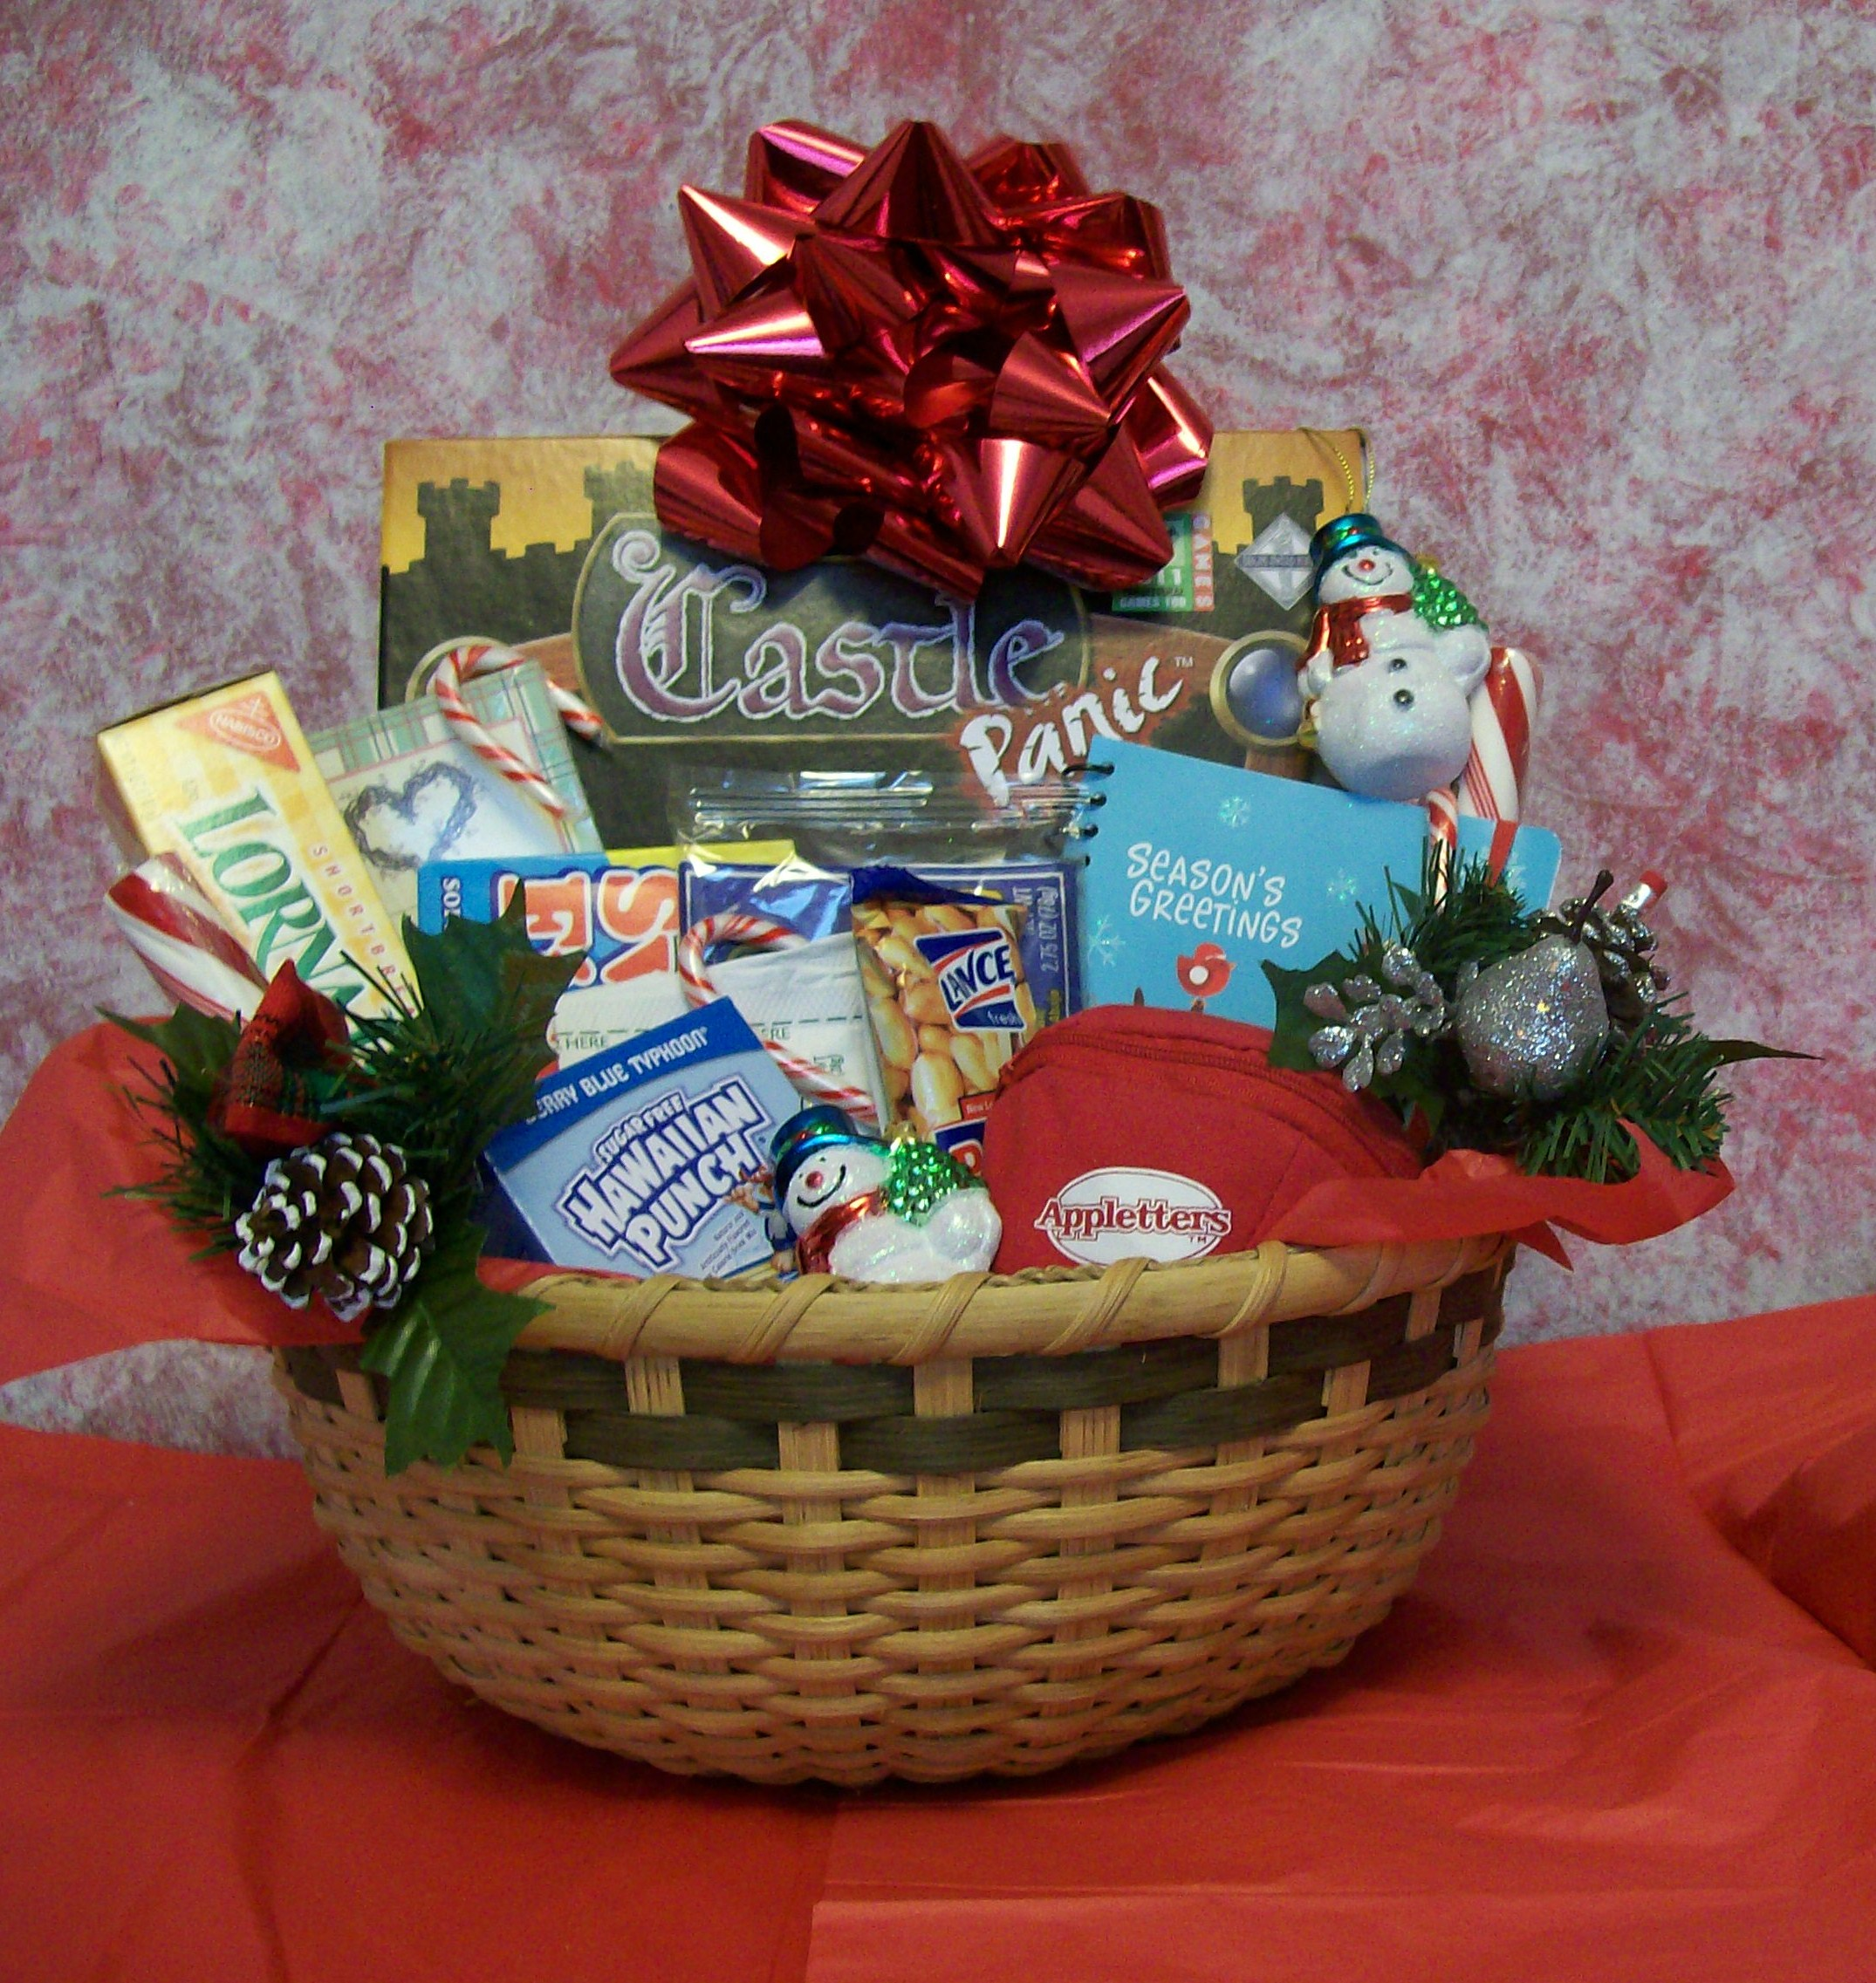 Castle Panic Gift Basket For Christmas